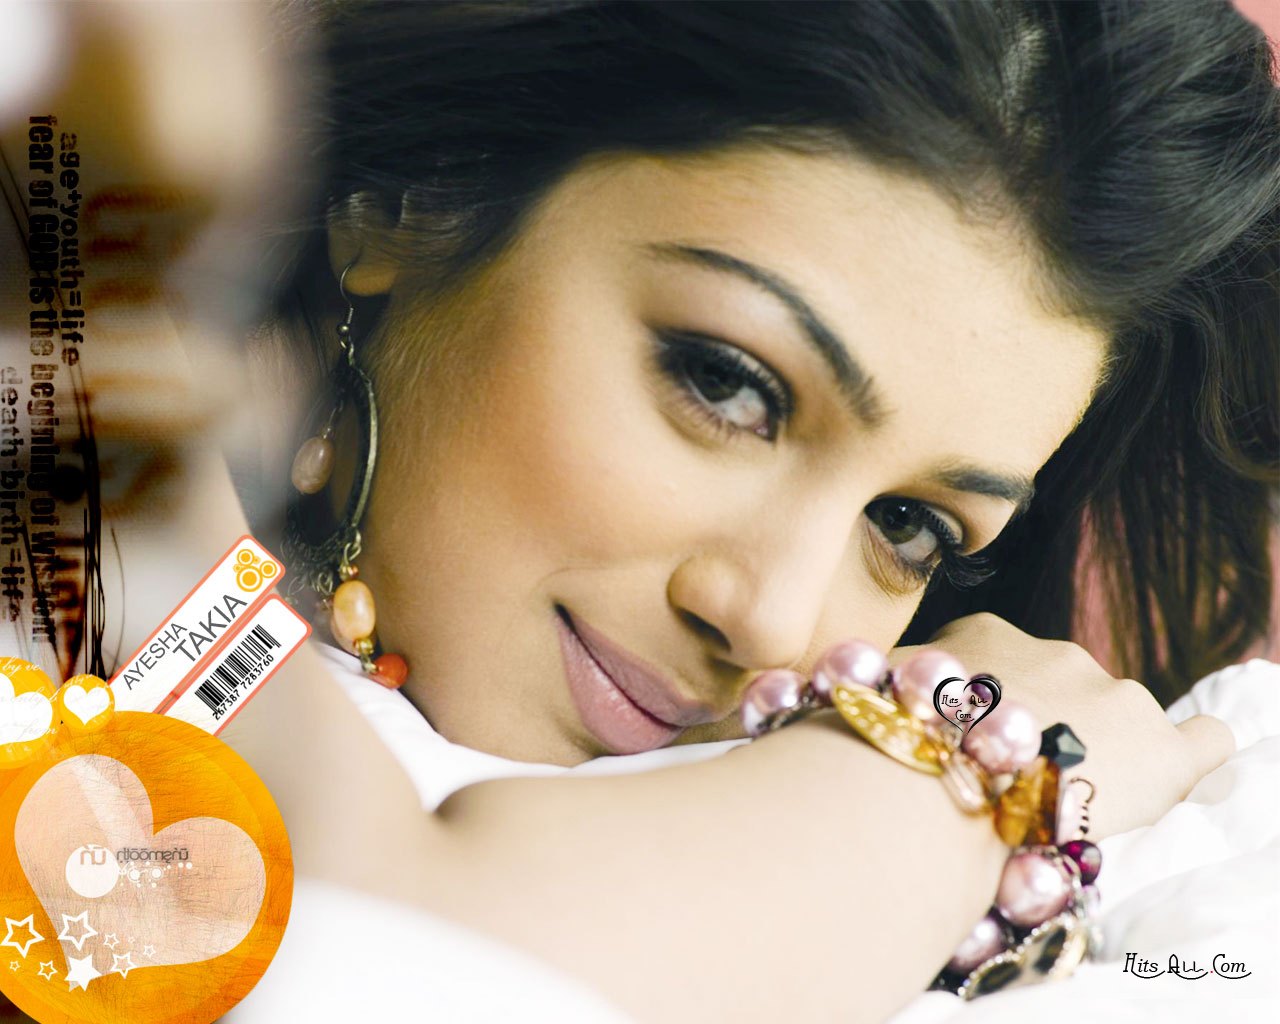 Cute Wallpaper In Twitter Bollywood Star News Ayesha Takia Hot Amp Sexy Pictures